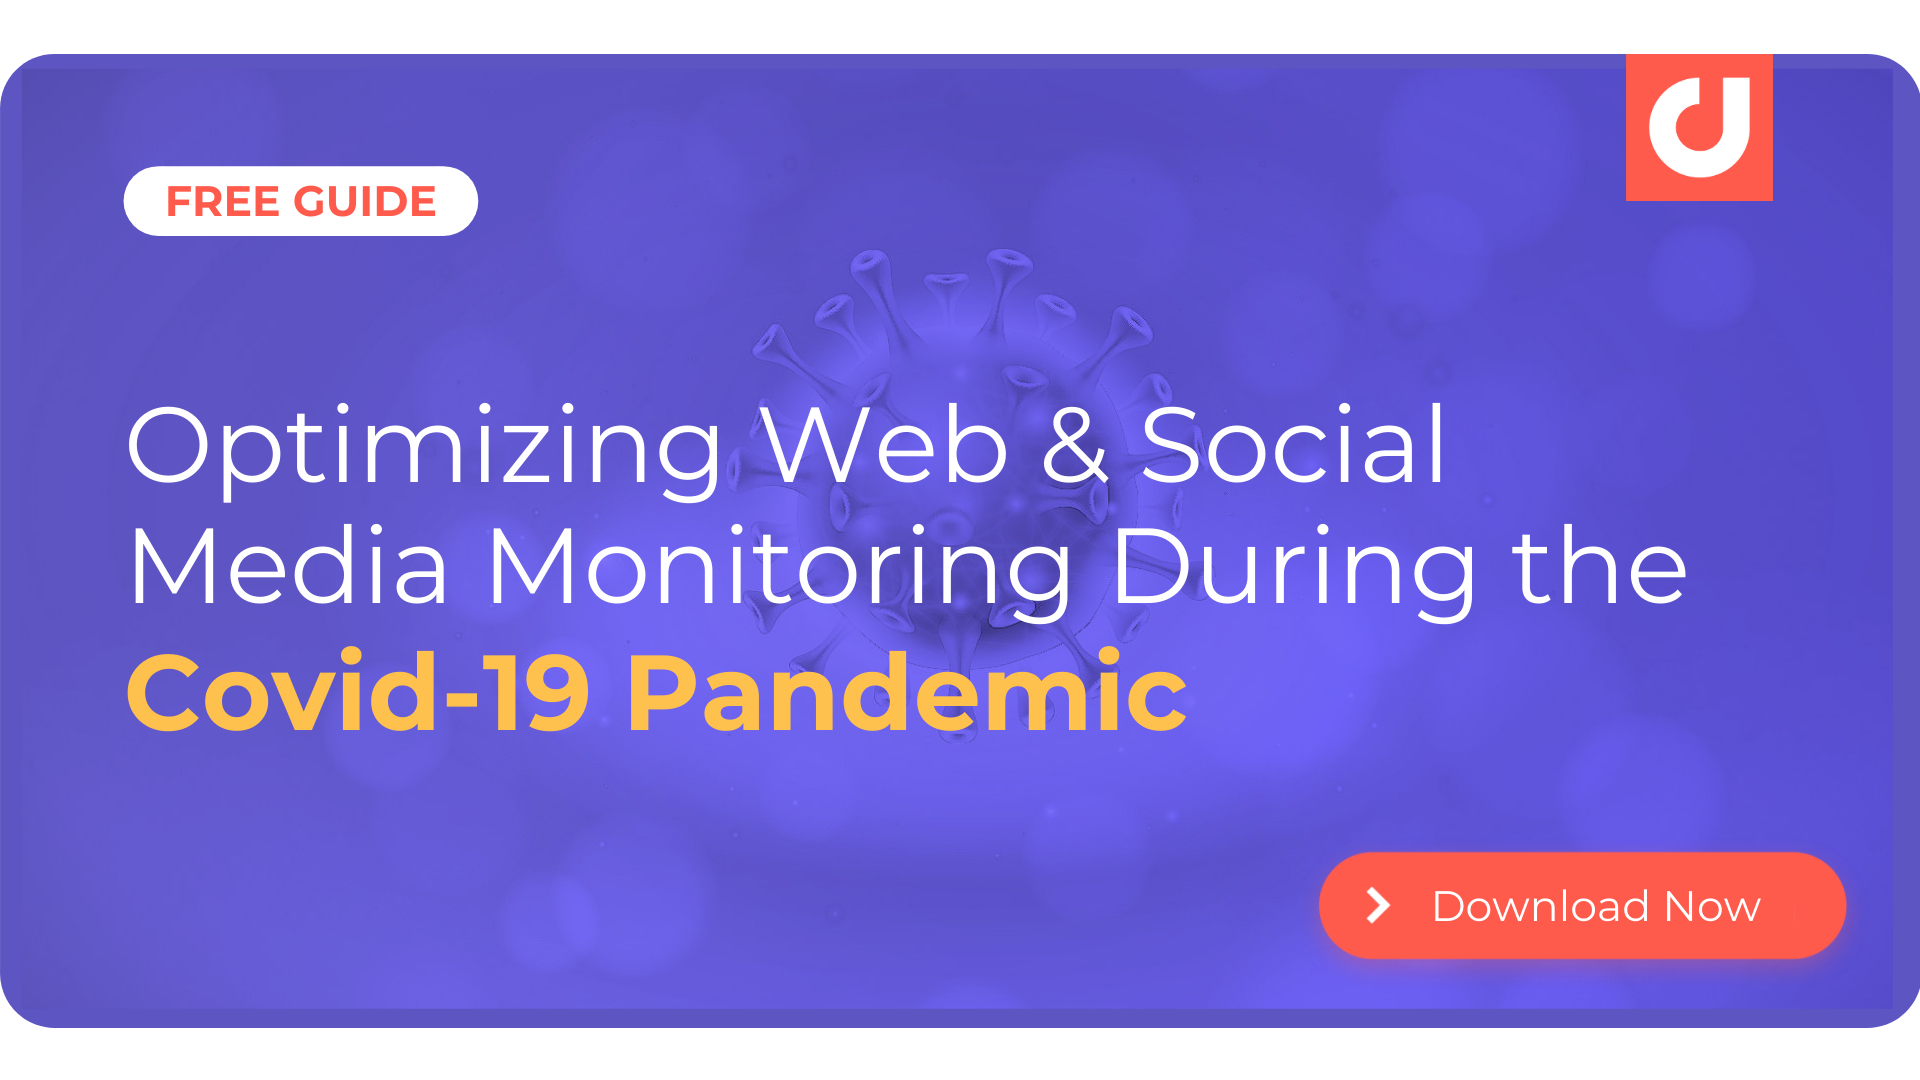 Optimizing Web & Social Media Monitoring during the Covid-19 Pandemic - Blog CTA